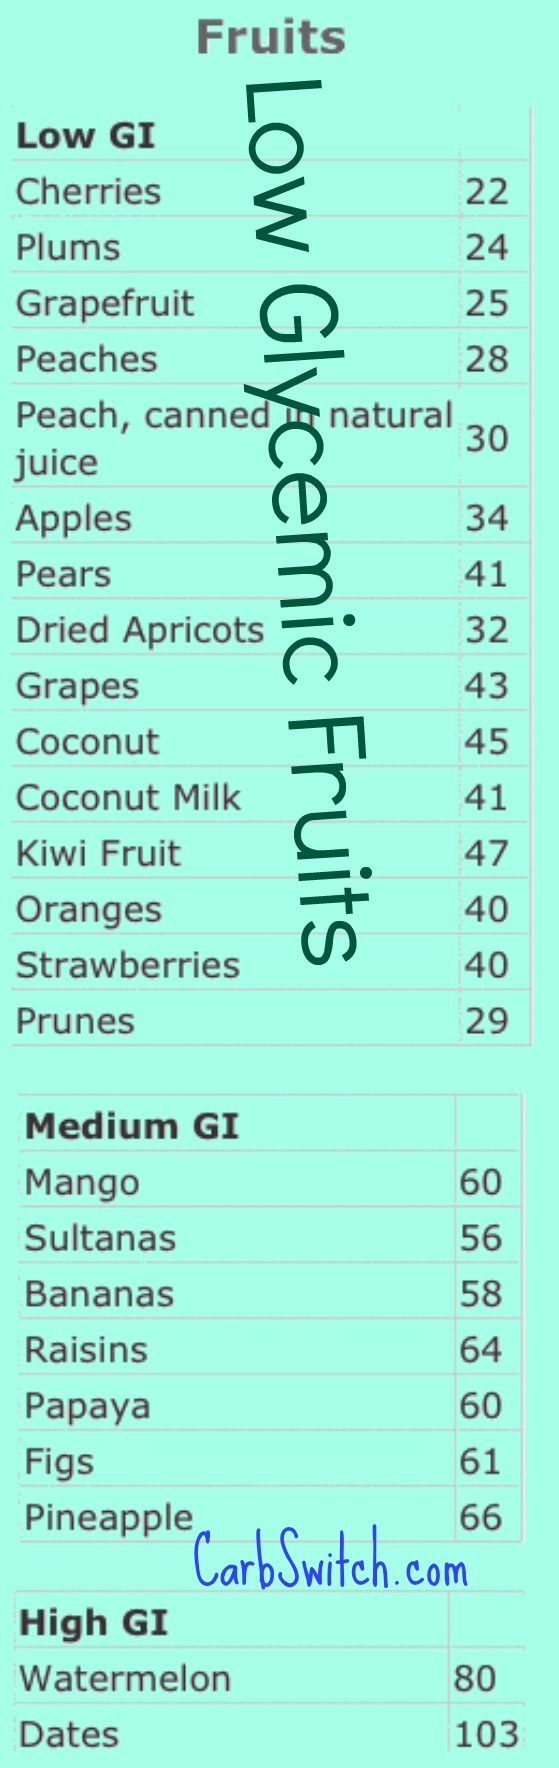 breakfast fruit recipes glycemic index fruit